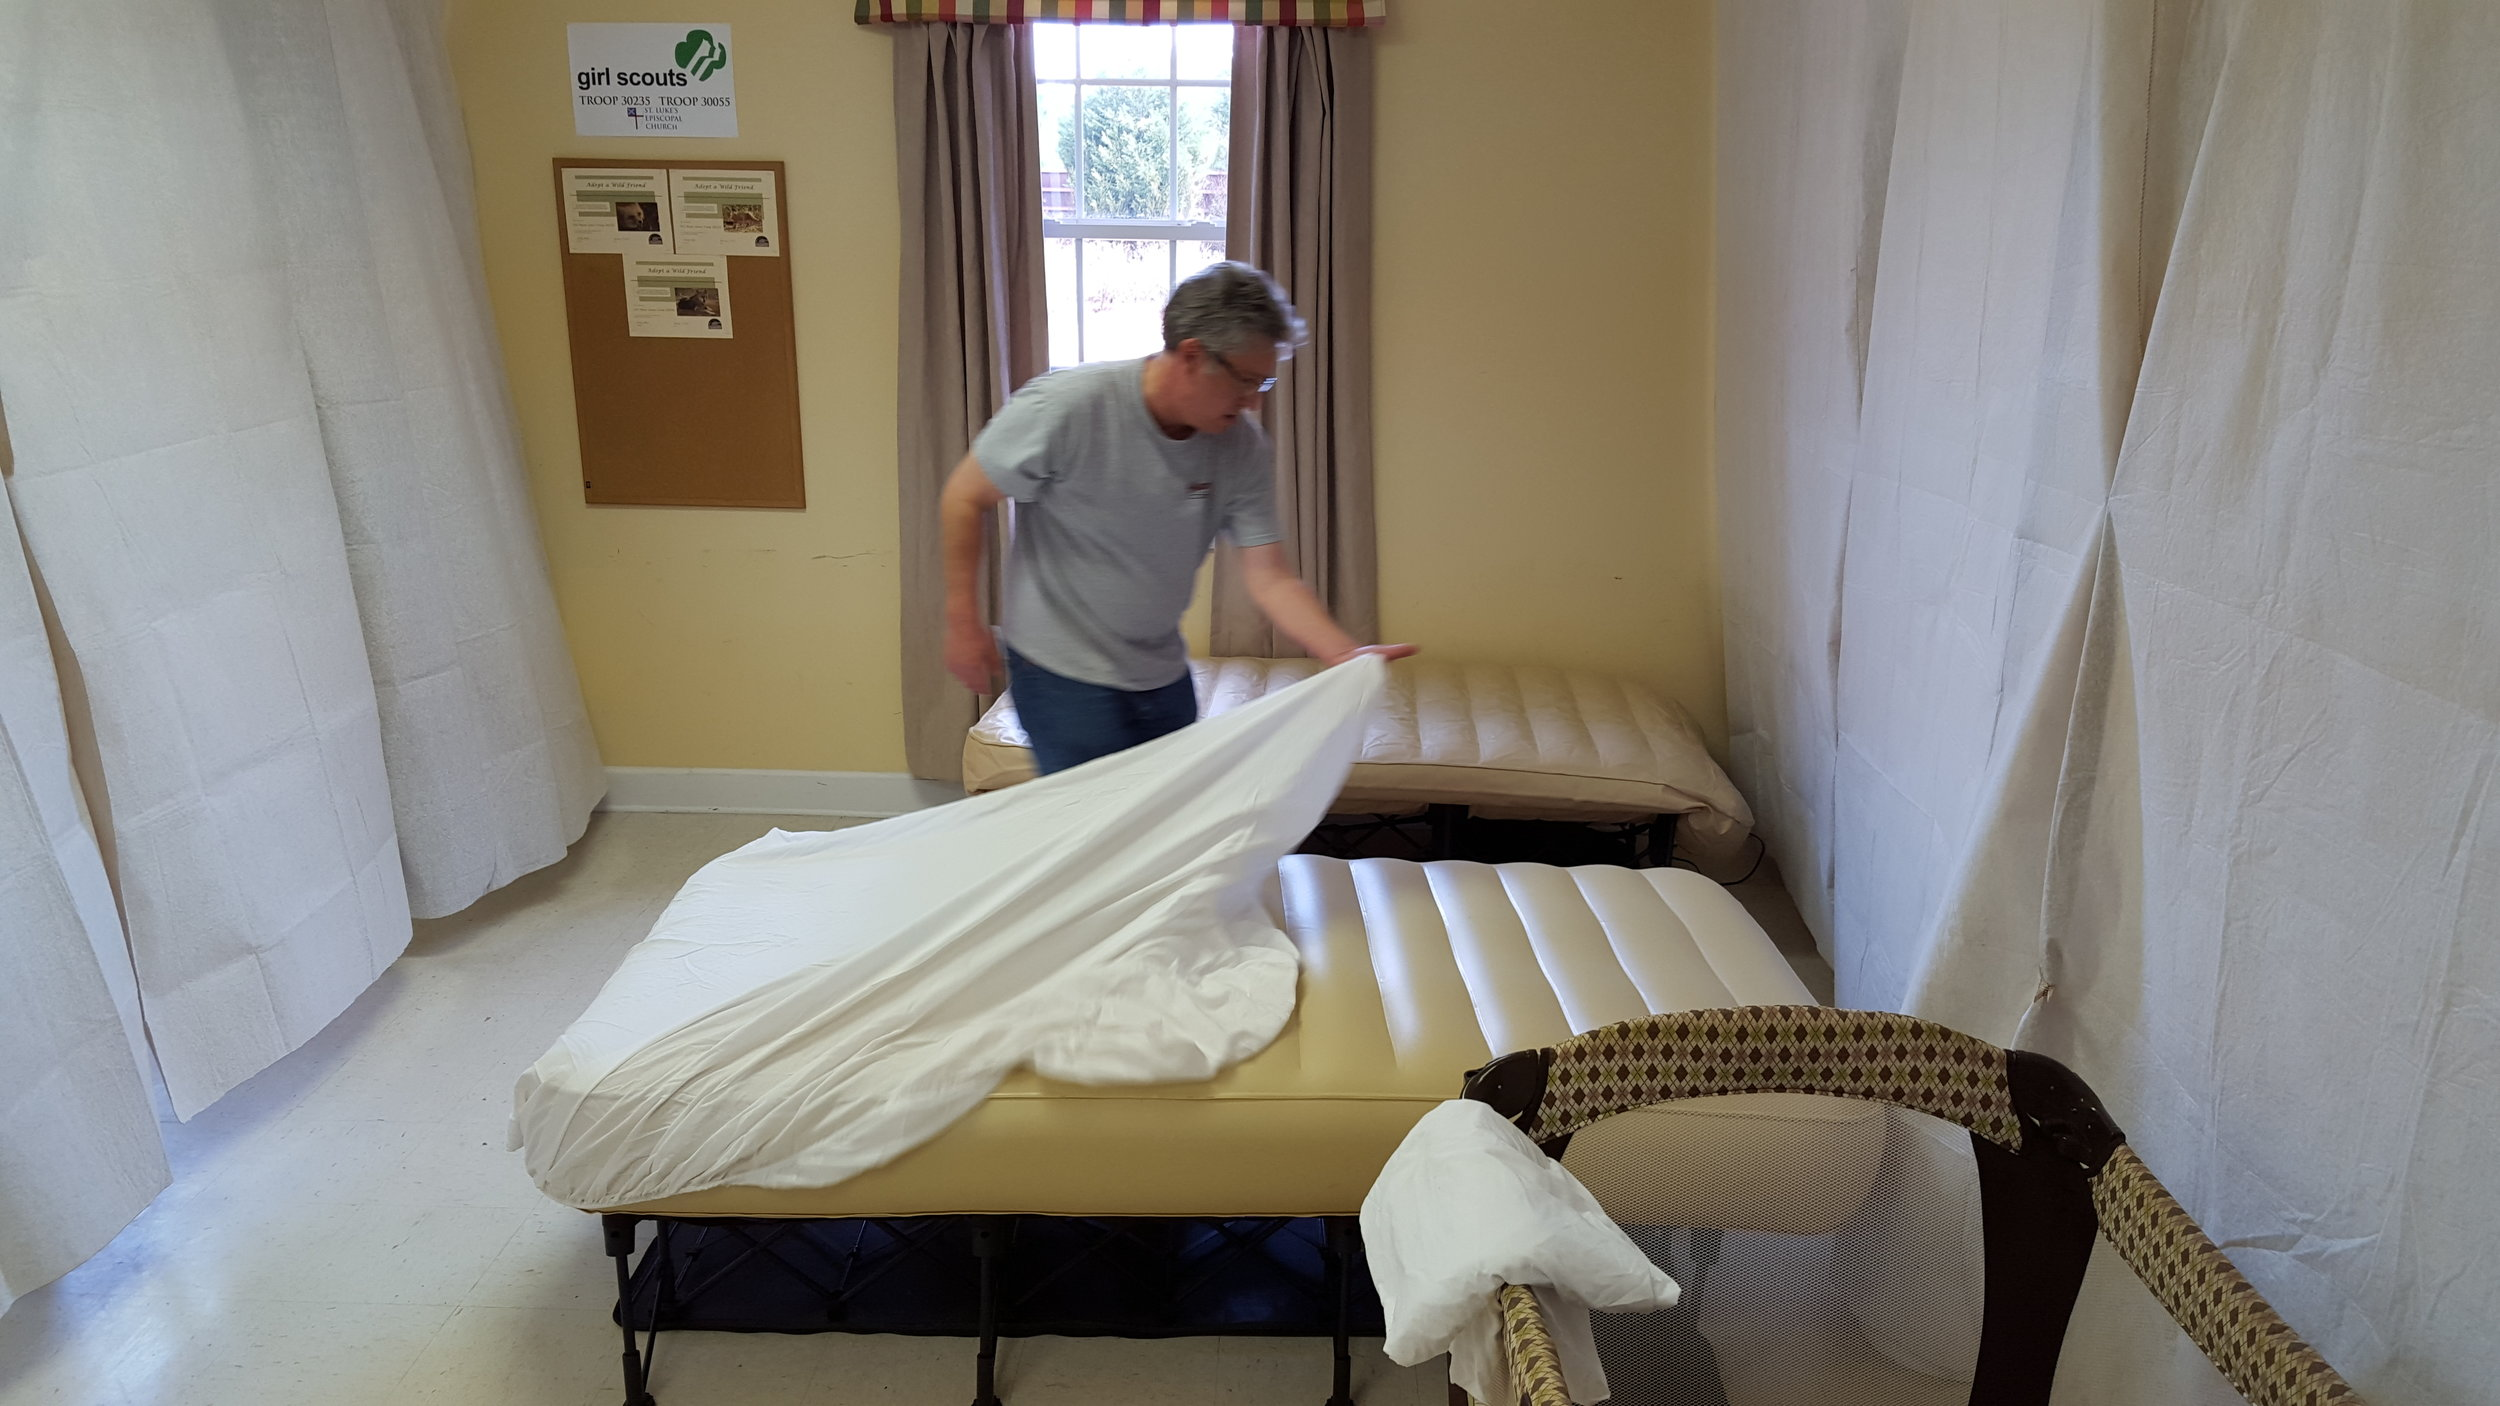 Setting up beds for Family Promise guests to stay overnight at St. Luke's for a week.